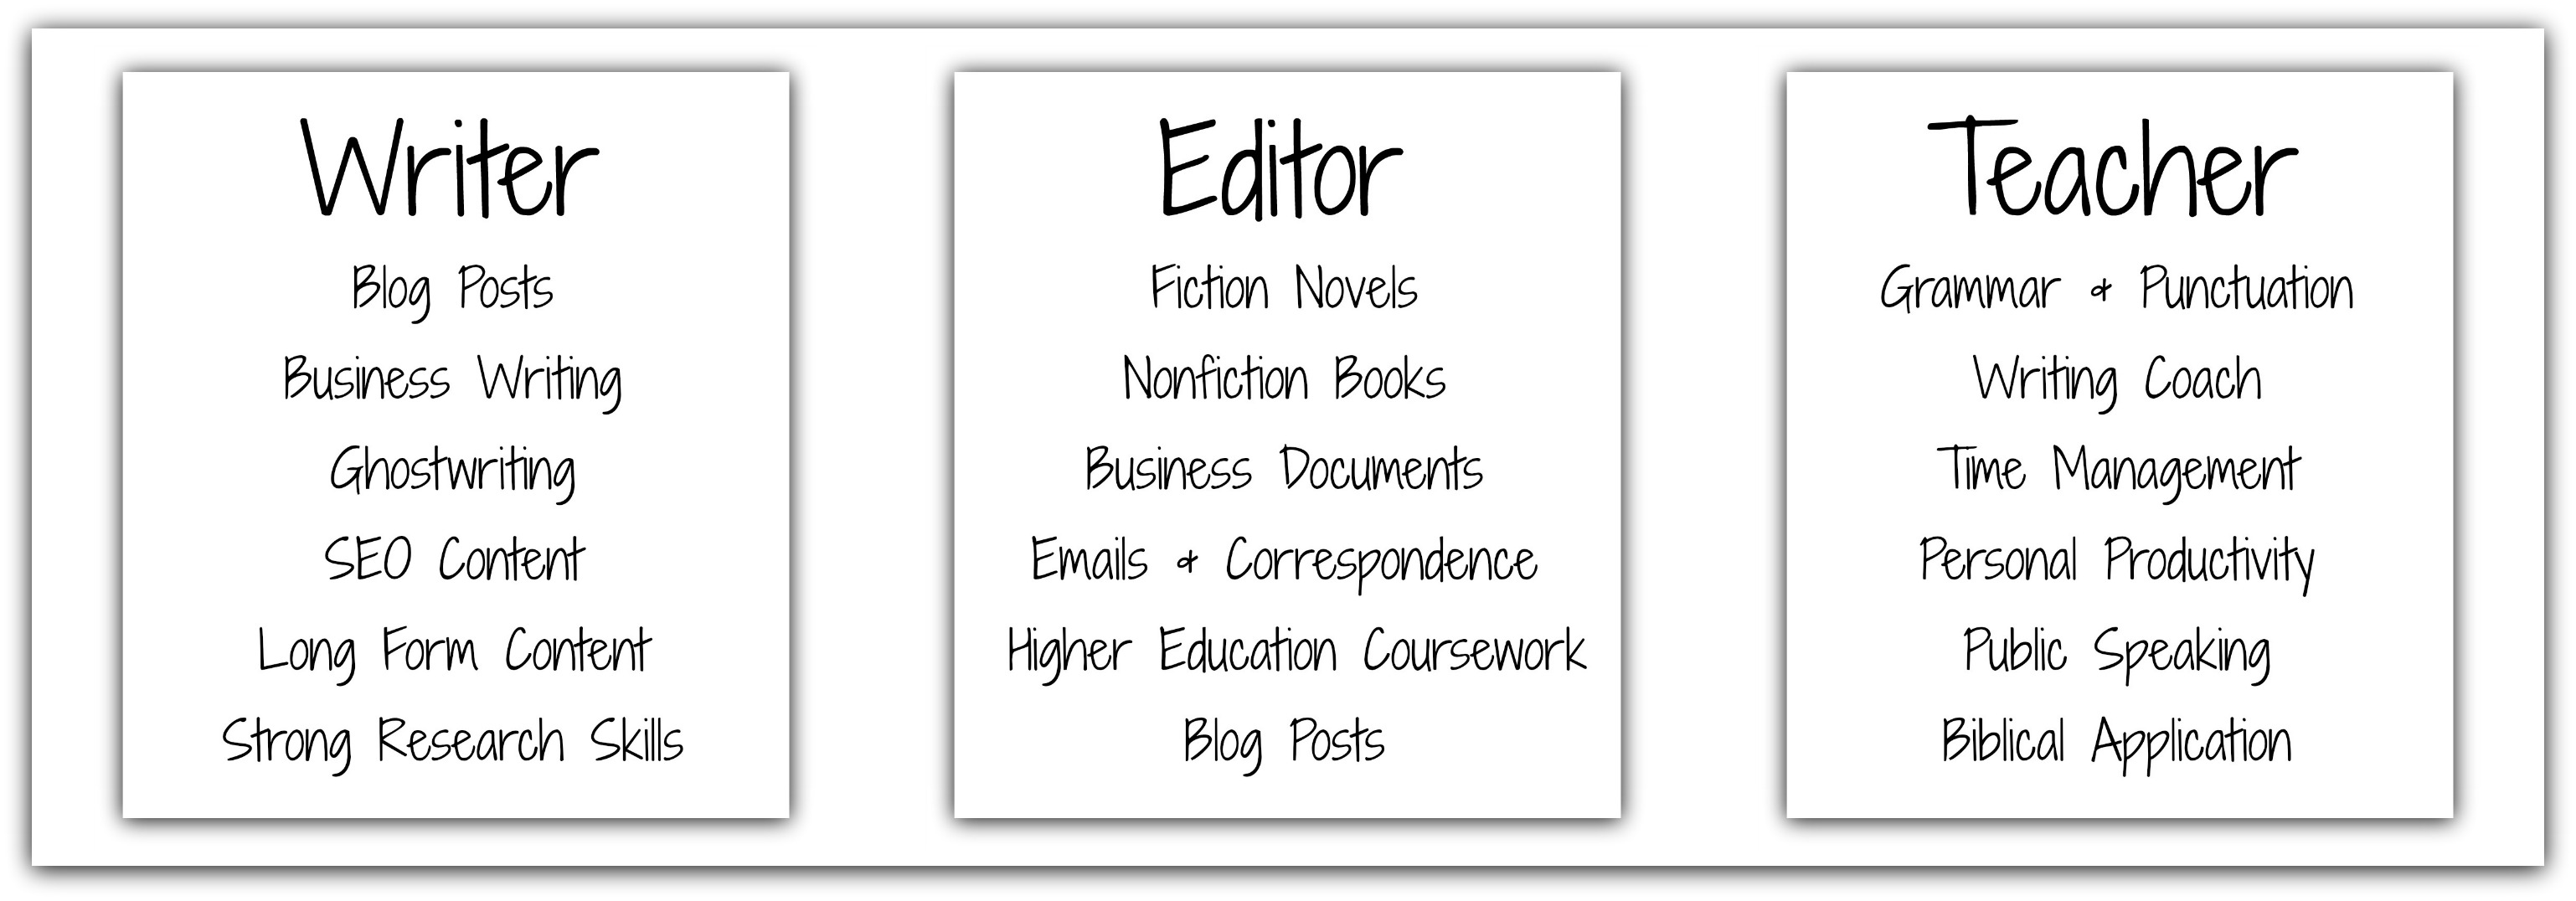 writer-editor-teacher